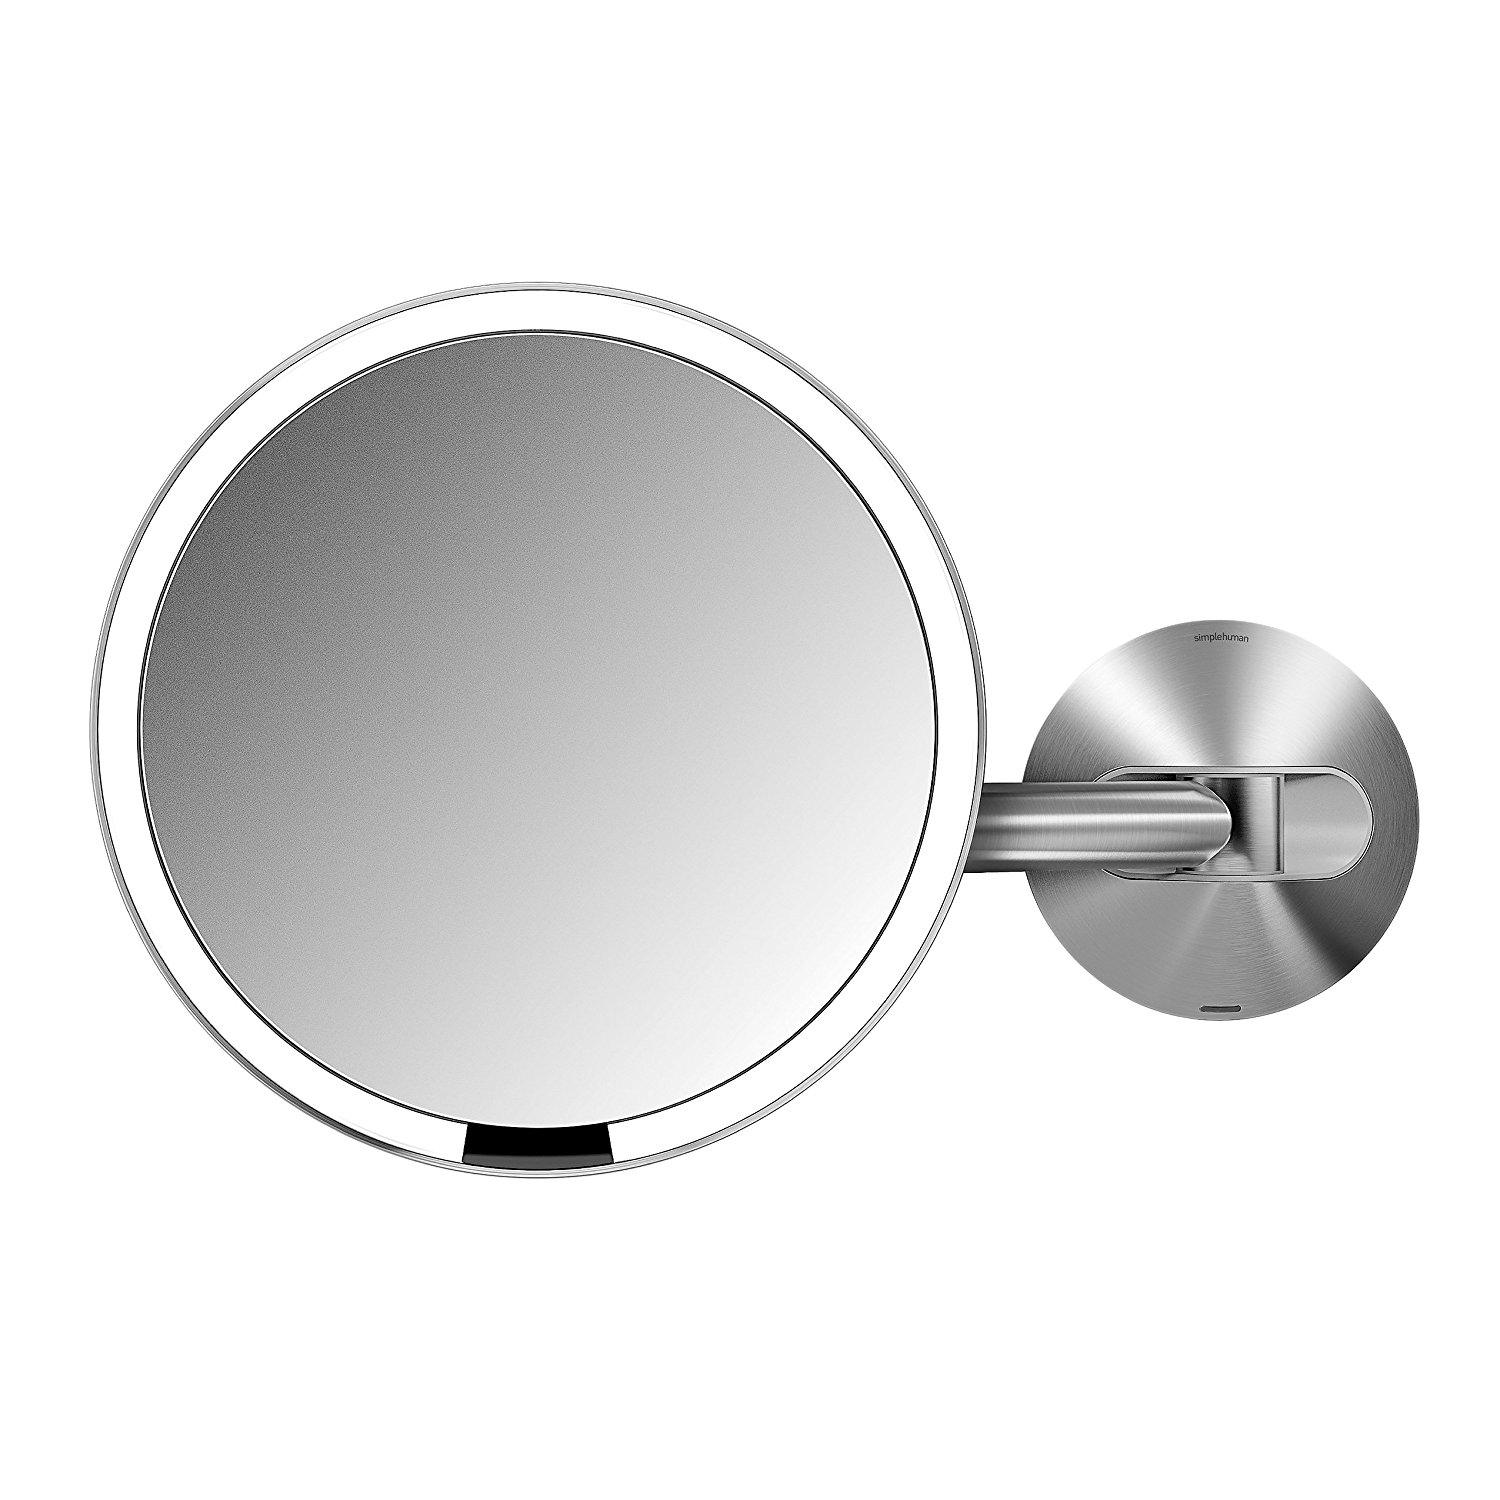 7 best lighted makeup mirrors reviewed top pick for 2017 5 pick best for wall mounted lighted makeup mirror aloadofball Choice Image